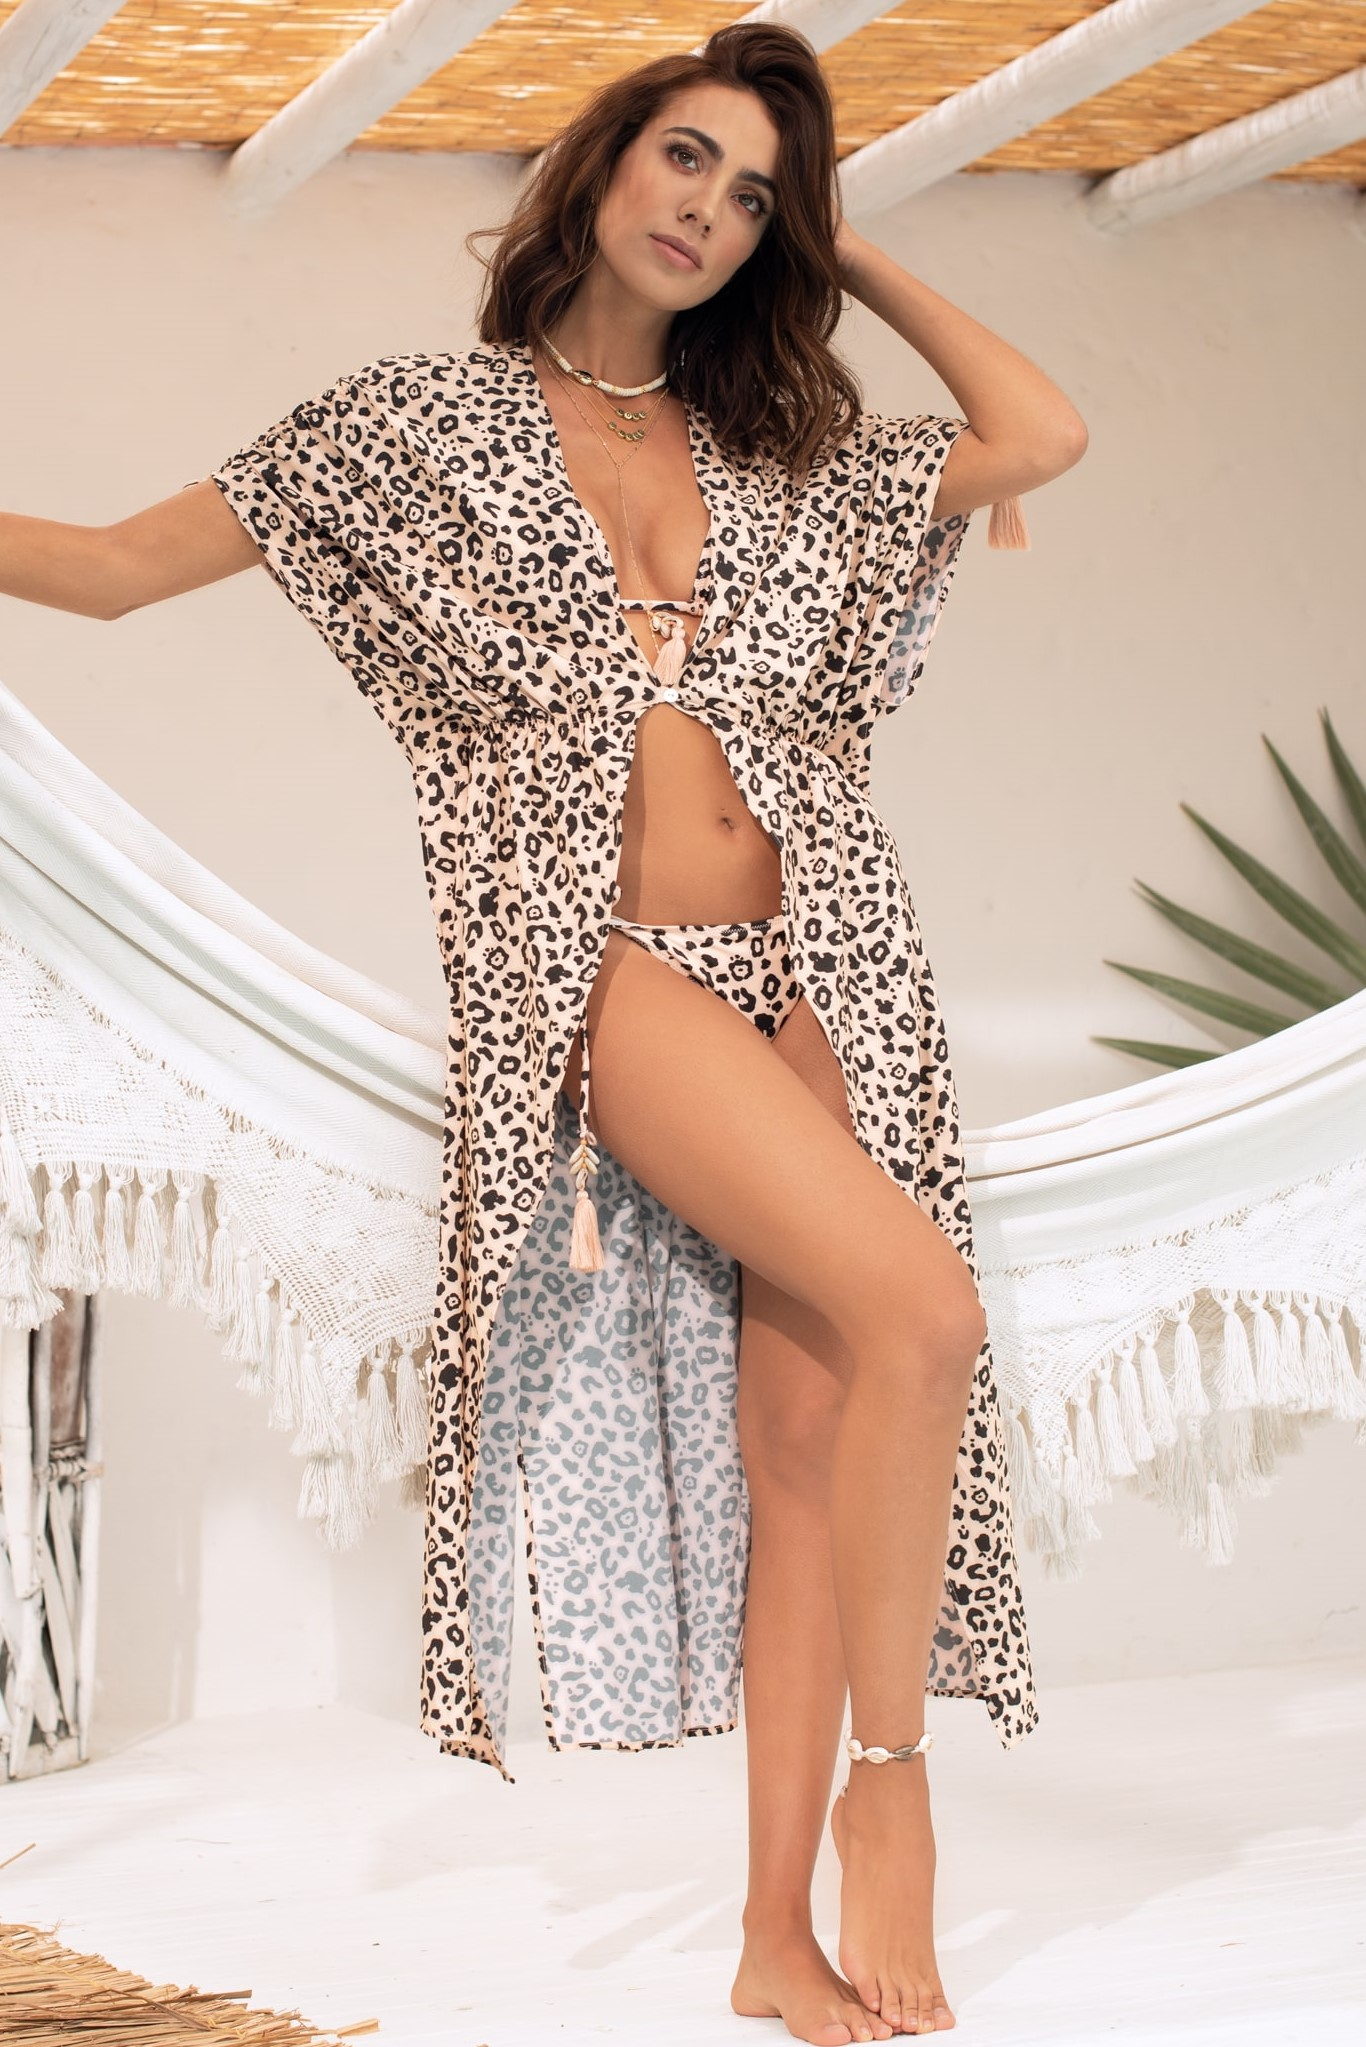 Milonga Jaguar Wild Beach Cover Up Animal Print